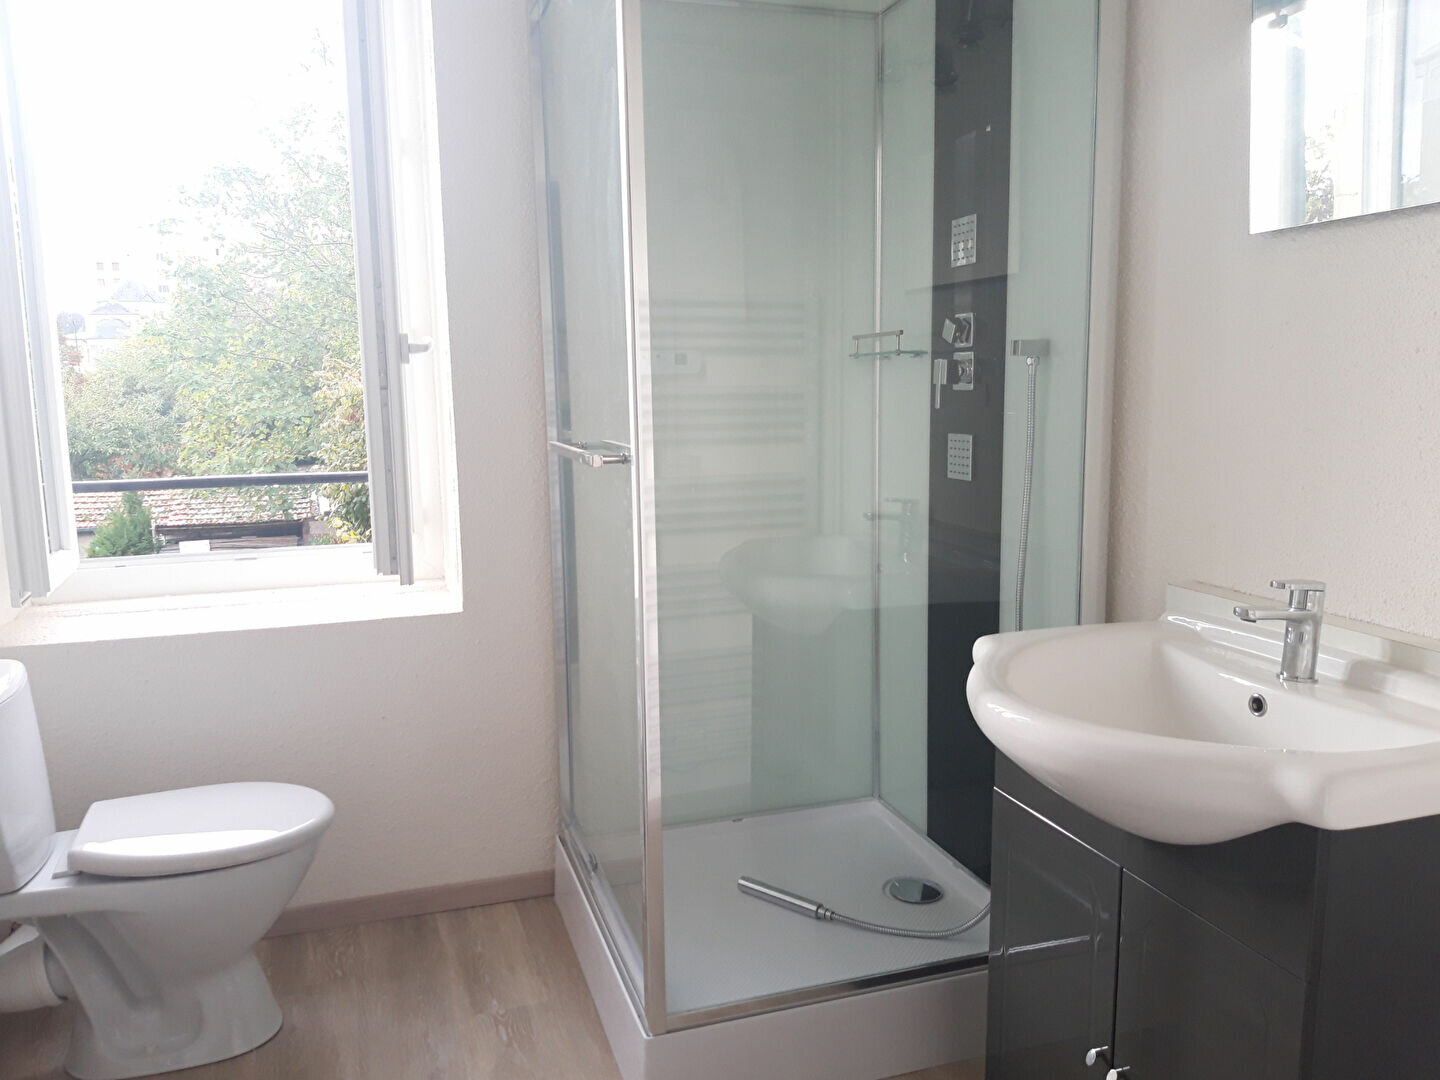 Appartement à louer 3 55m2 à Nevers vignette-2